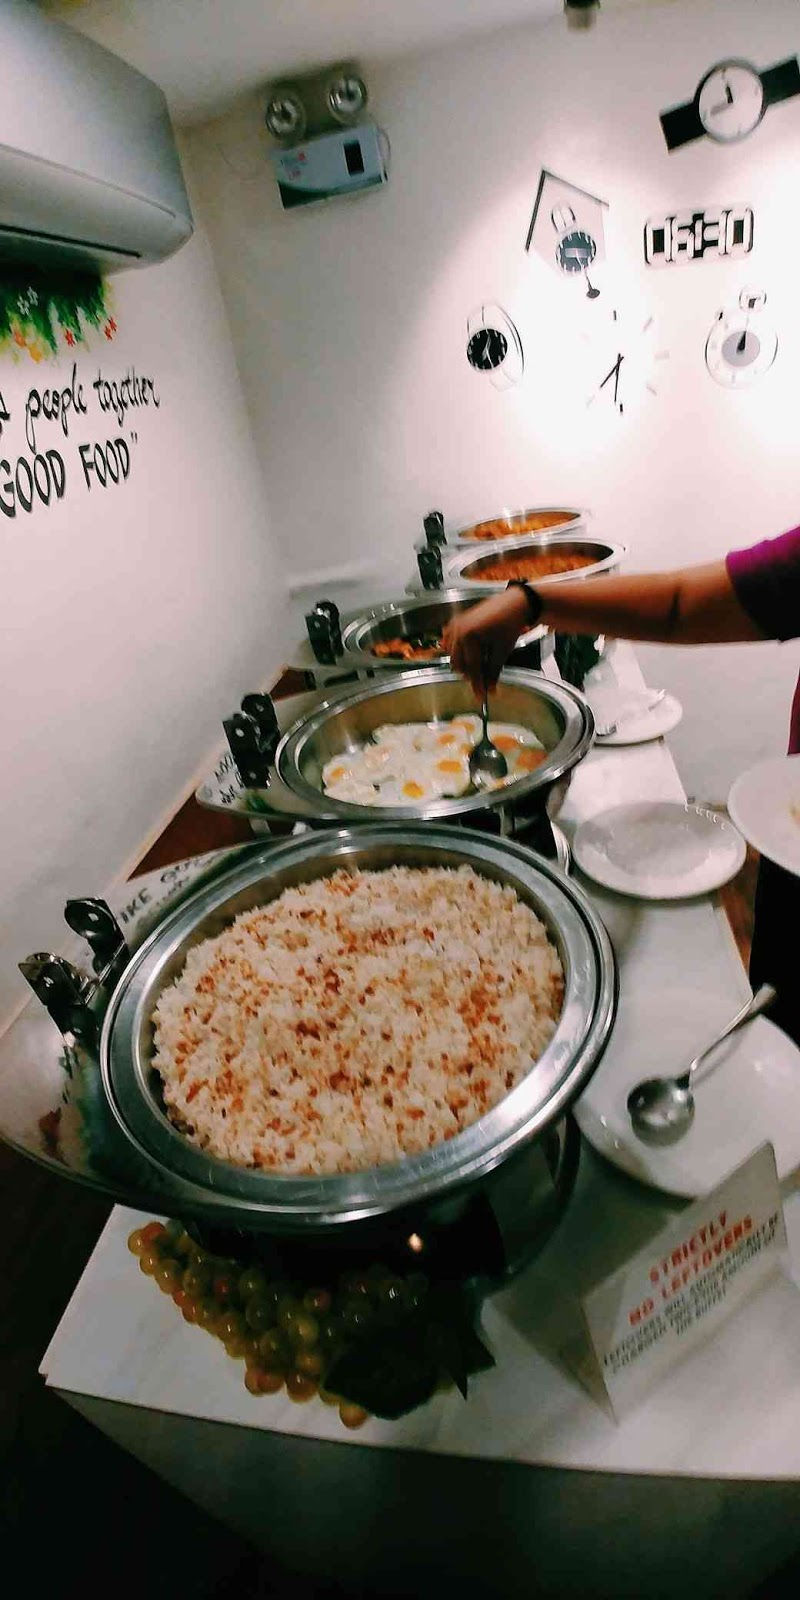 30 Buffet rice and eggs